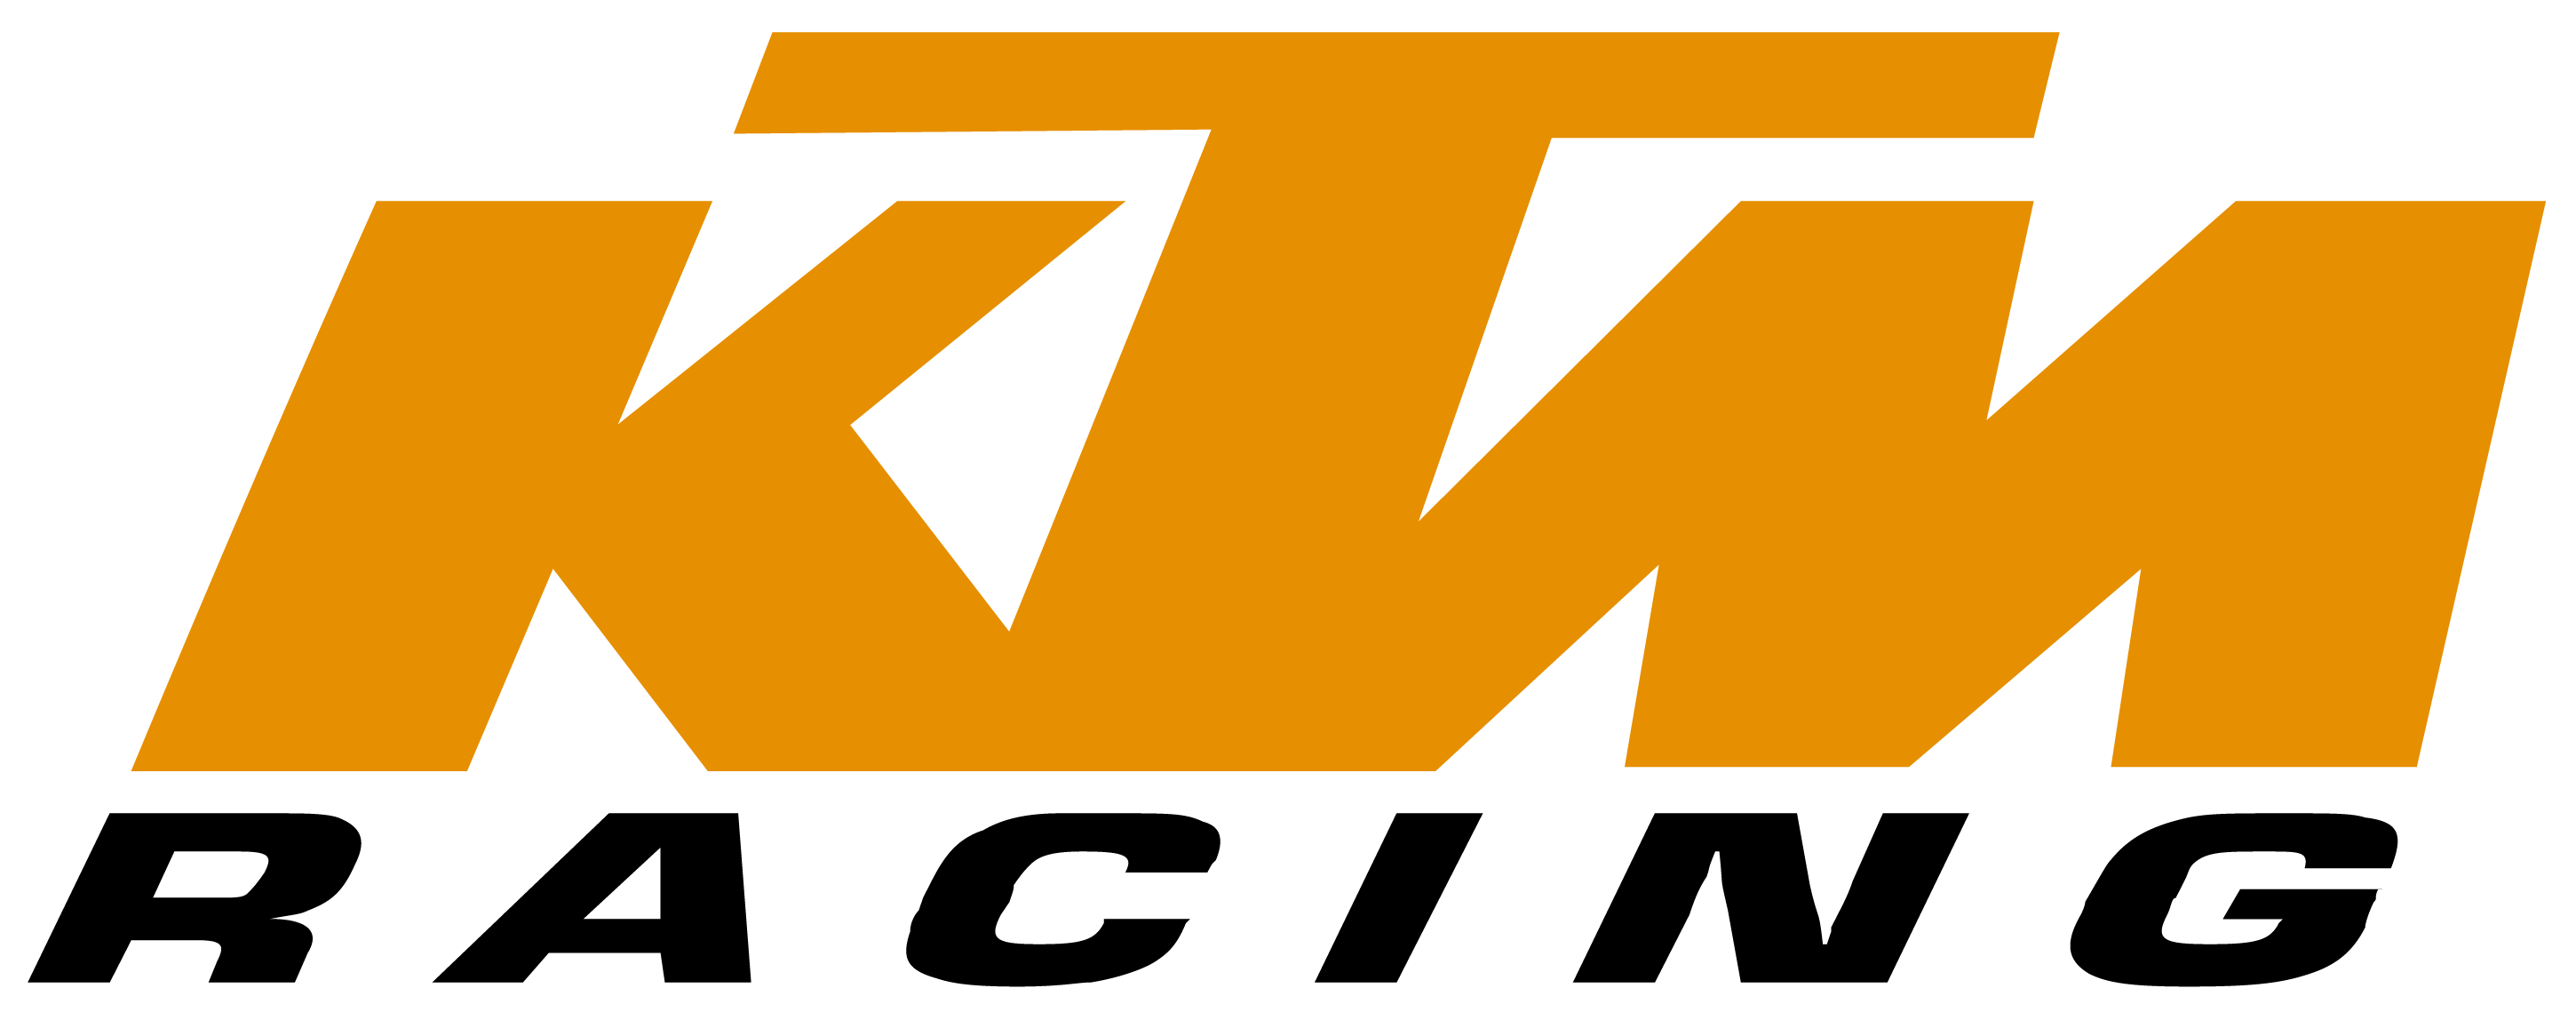 pin ktm duke logo - photo #12